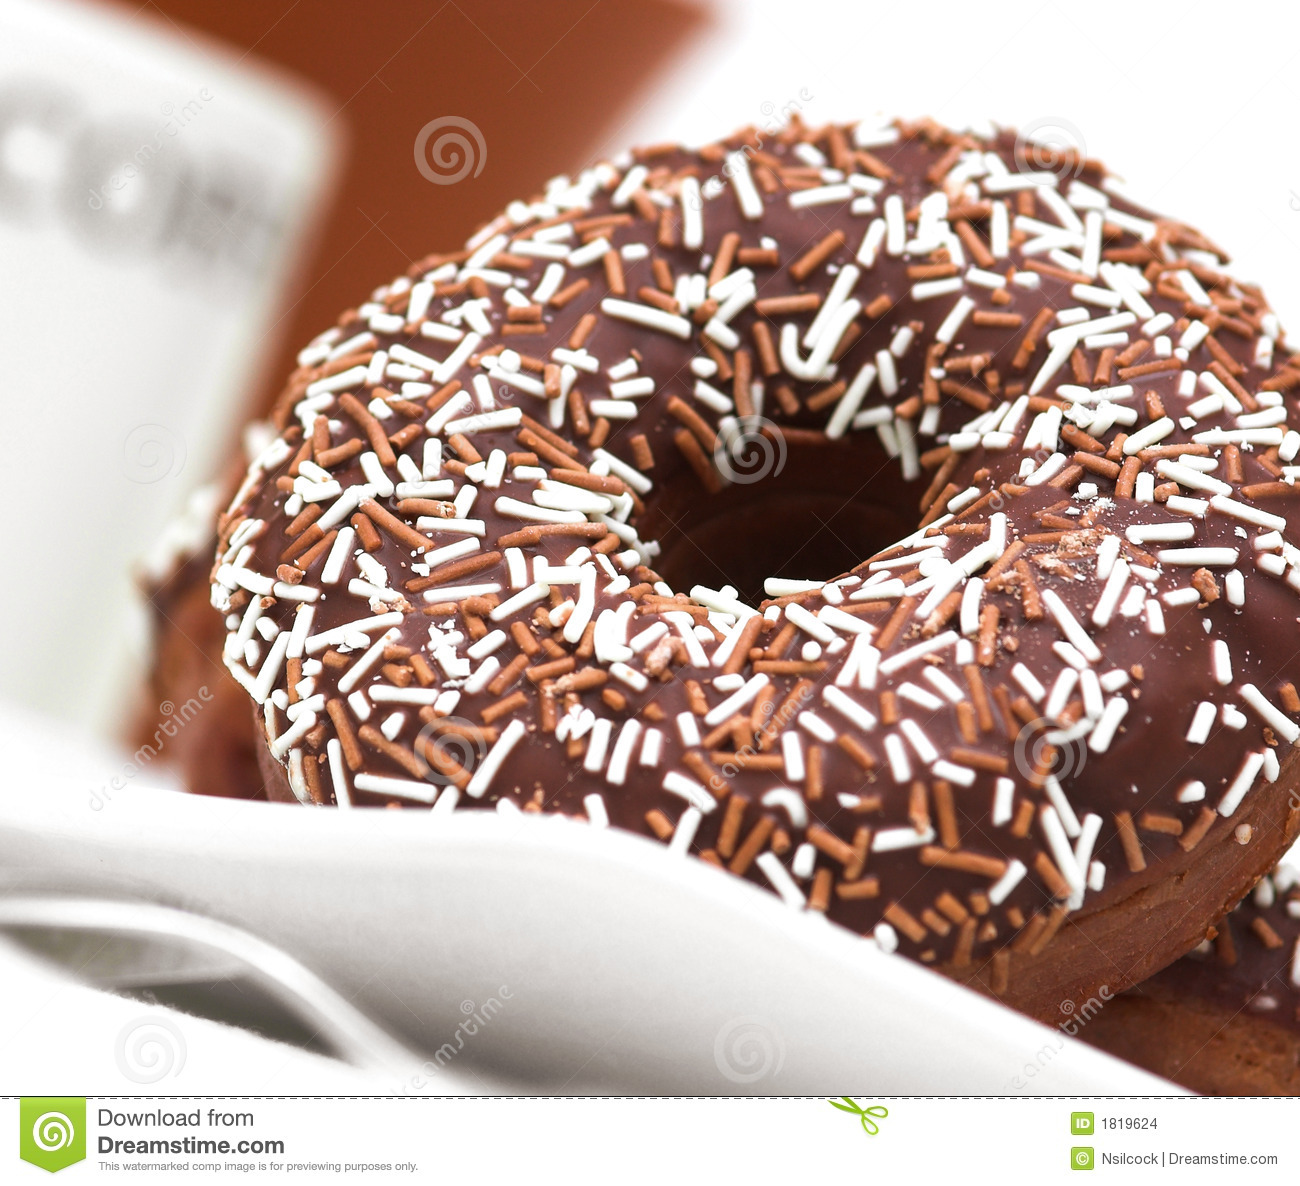 Chocolate Iced Ring Doughnuts Stock Images - Image: 1819624